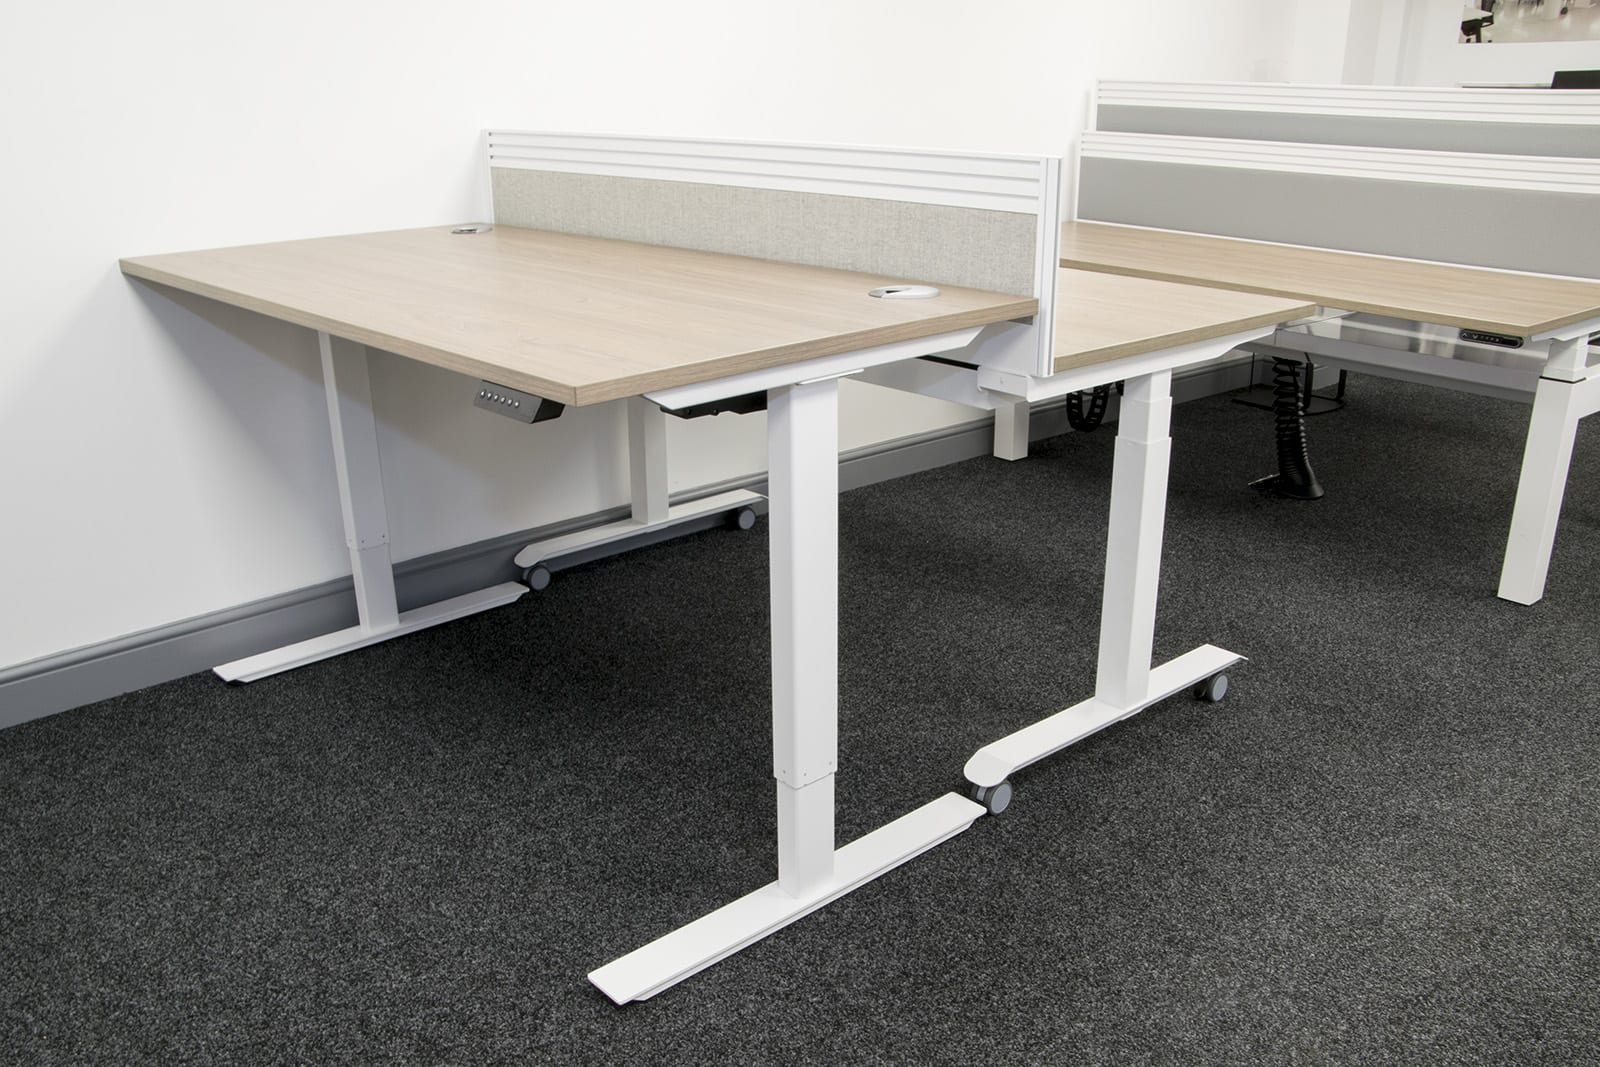 matrix officeworks adjustable height sumptuous manual desk design